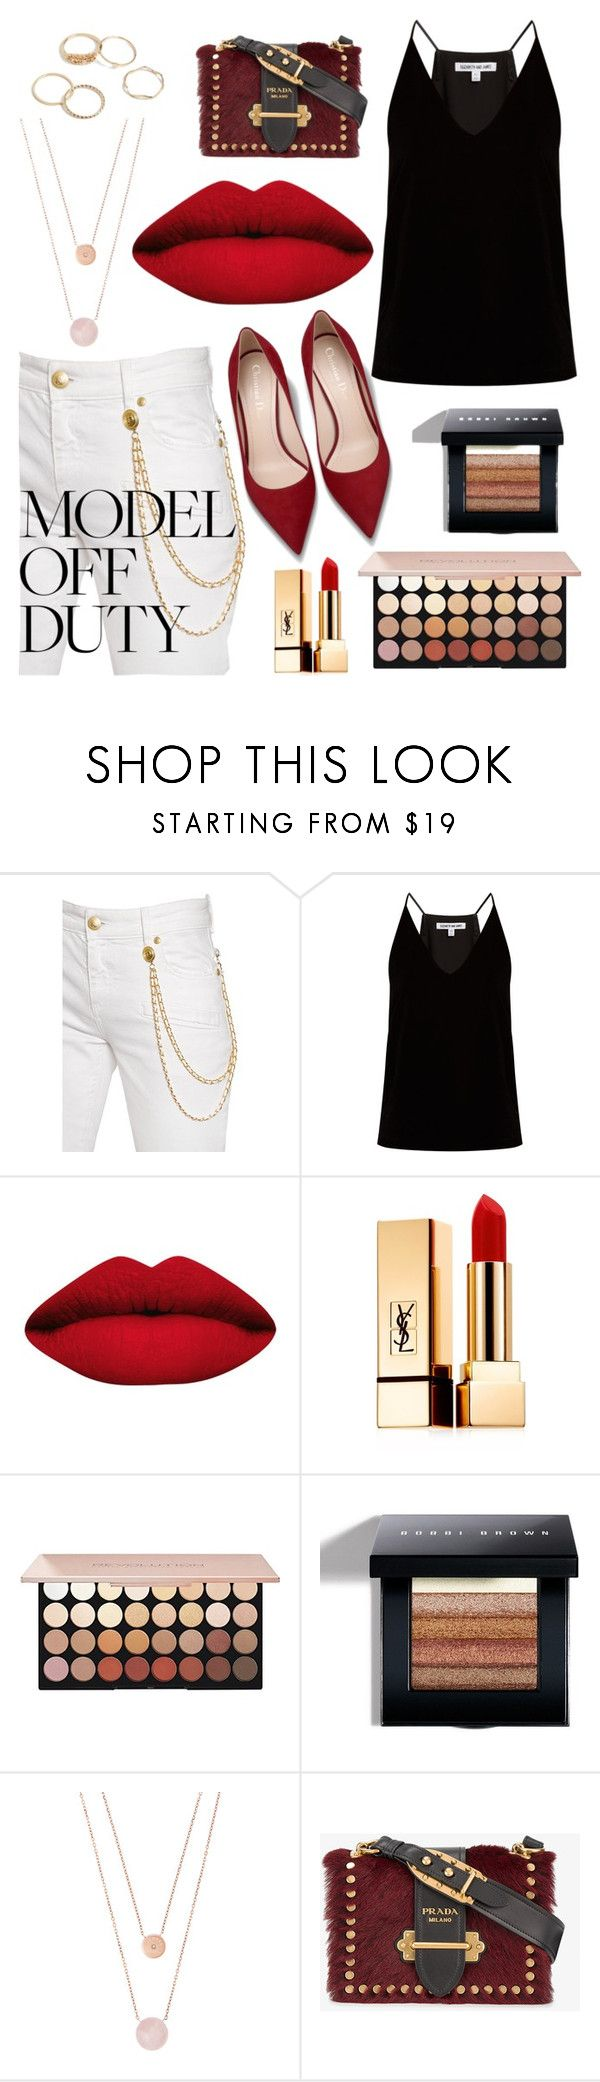 """""""white jeans"""" by toomanynumbers ❤ liked on Polyvore featuring Pierre Balmain, Elizabeth and James, LASplash, Yves Saint Laurent, Bobbi Brown Cosmetics, Michael Kors and Prada"""